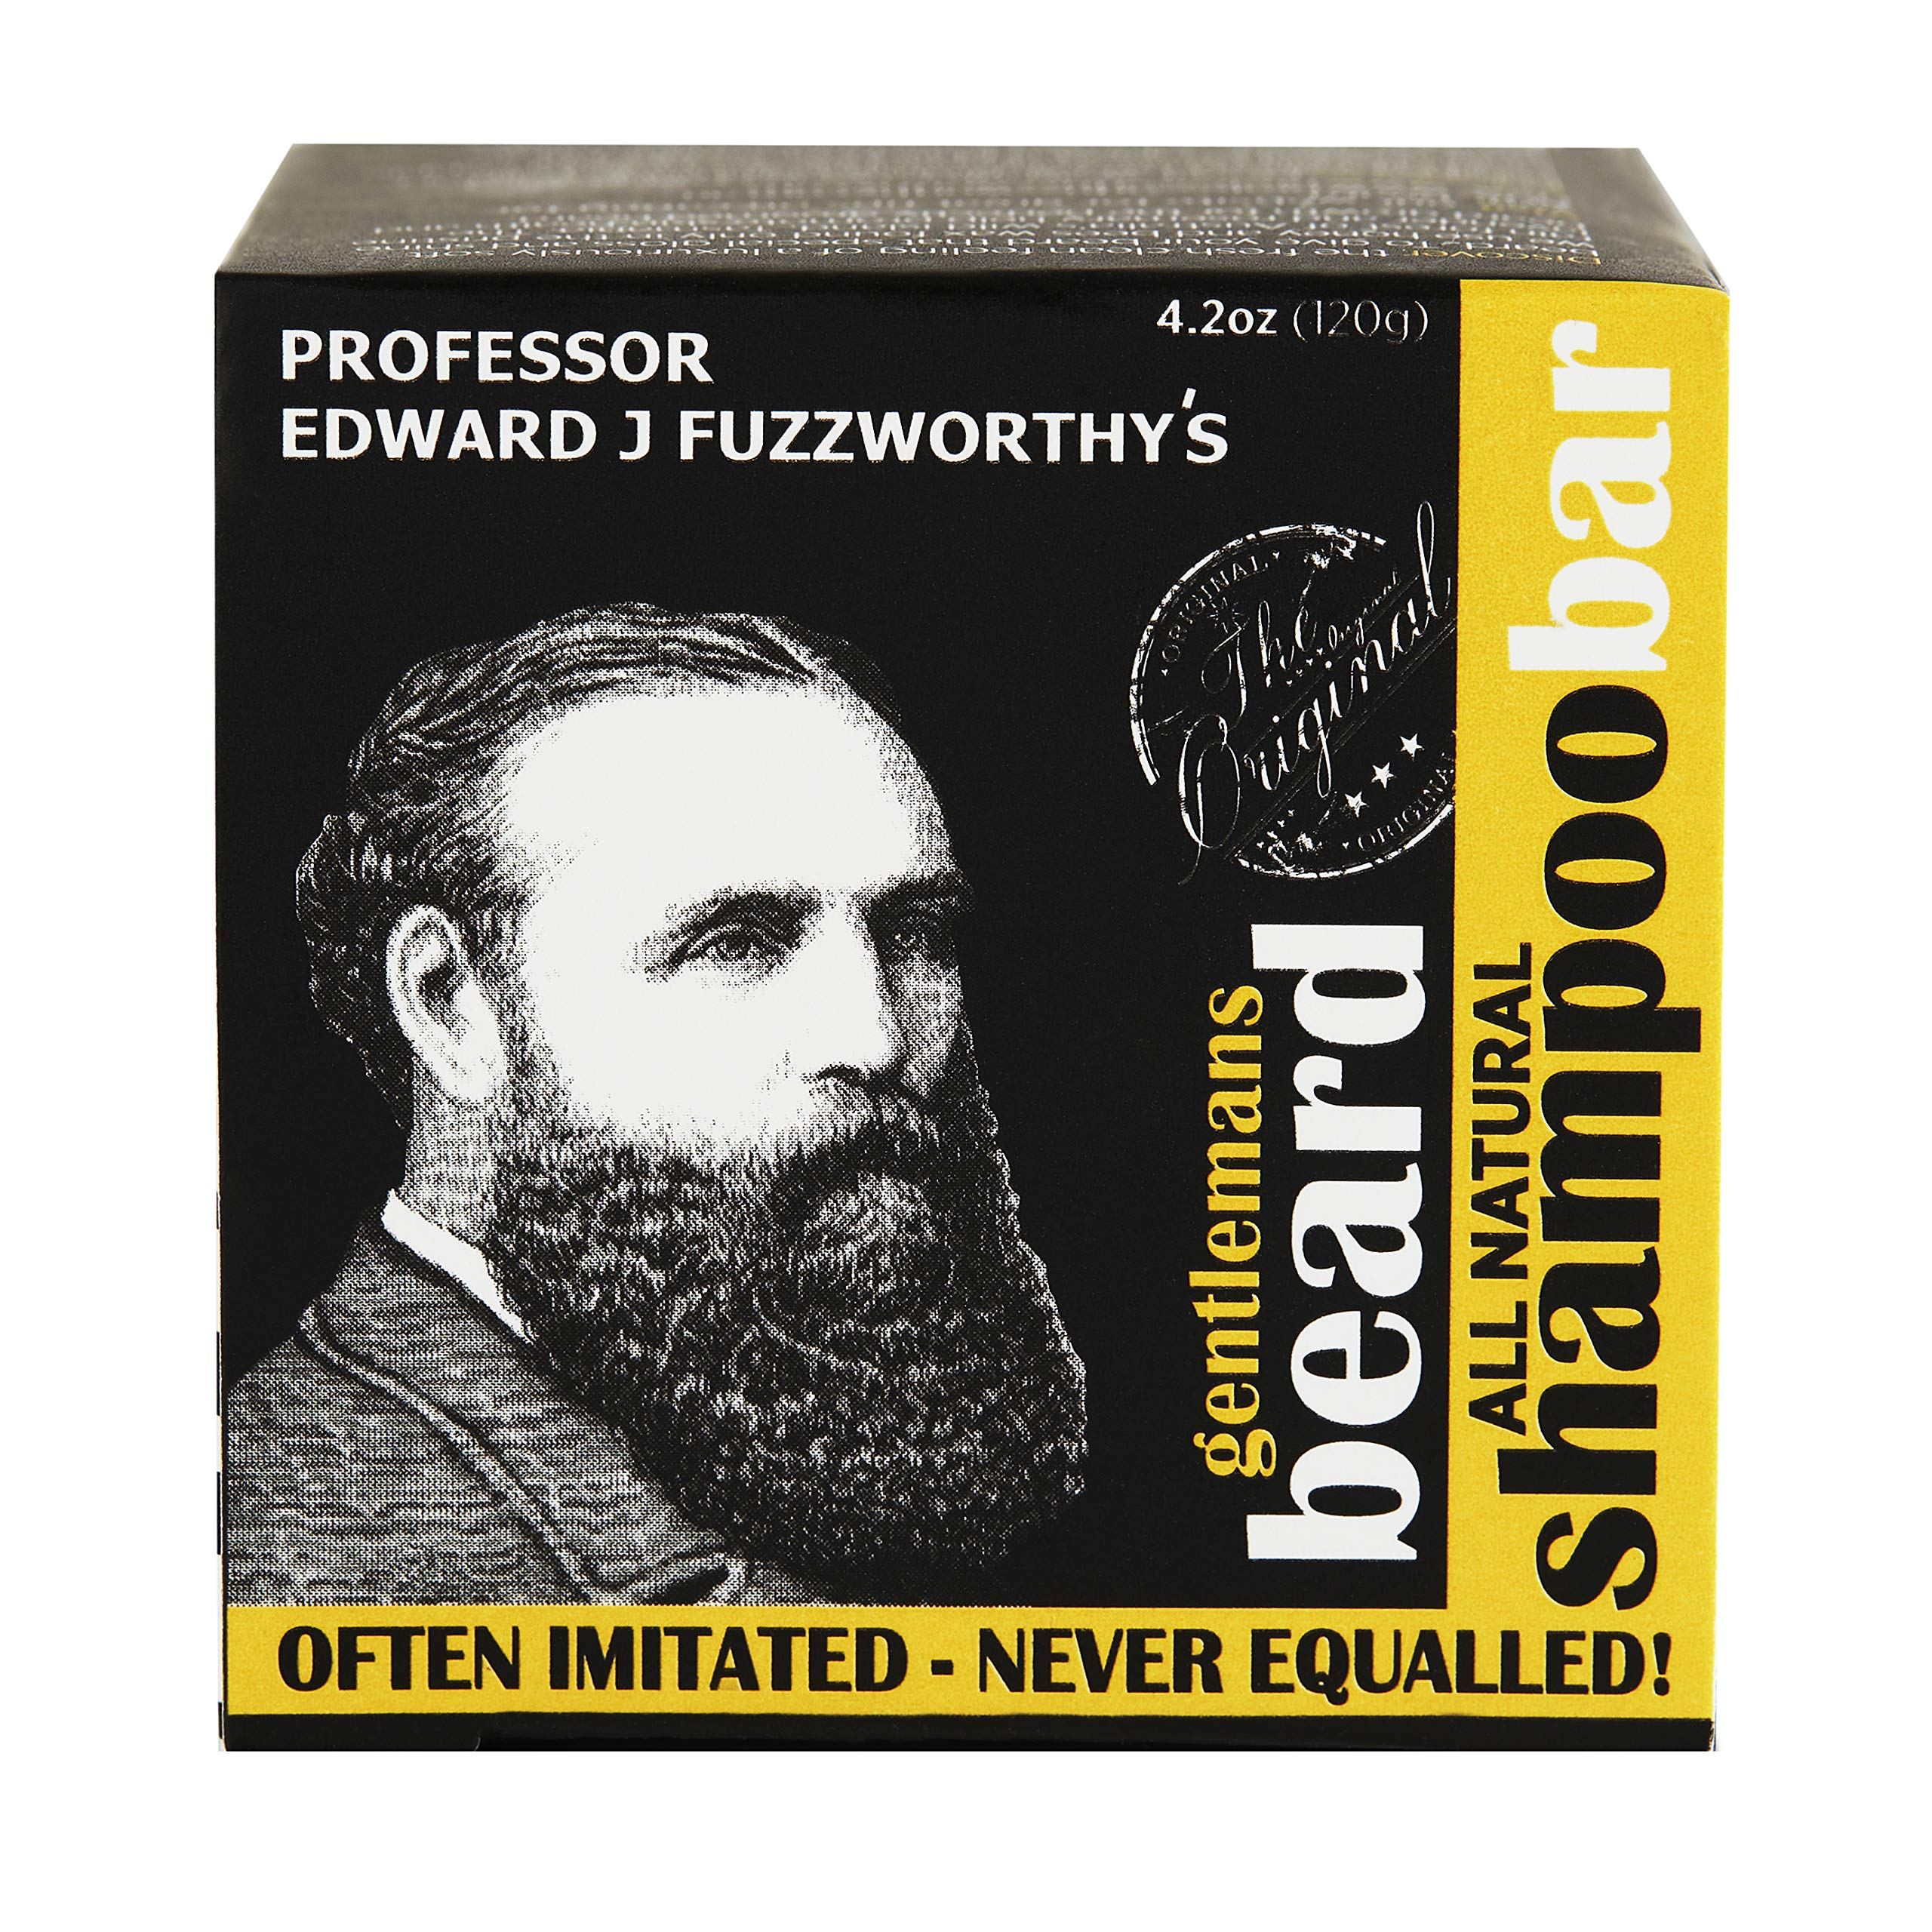 Beauty and the Bees Professor Fuzzworthy's Beard Shampoo with Natural Oils, 125g